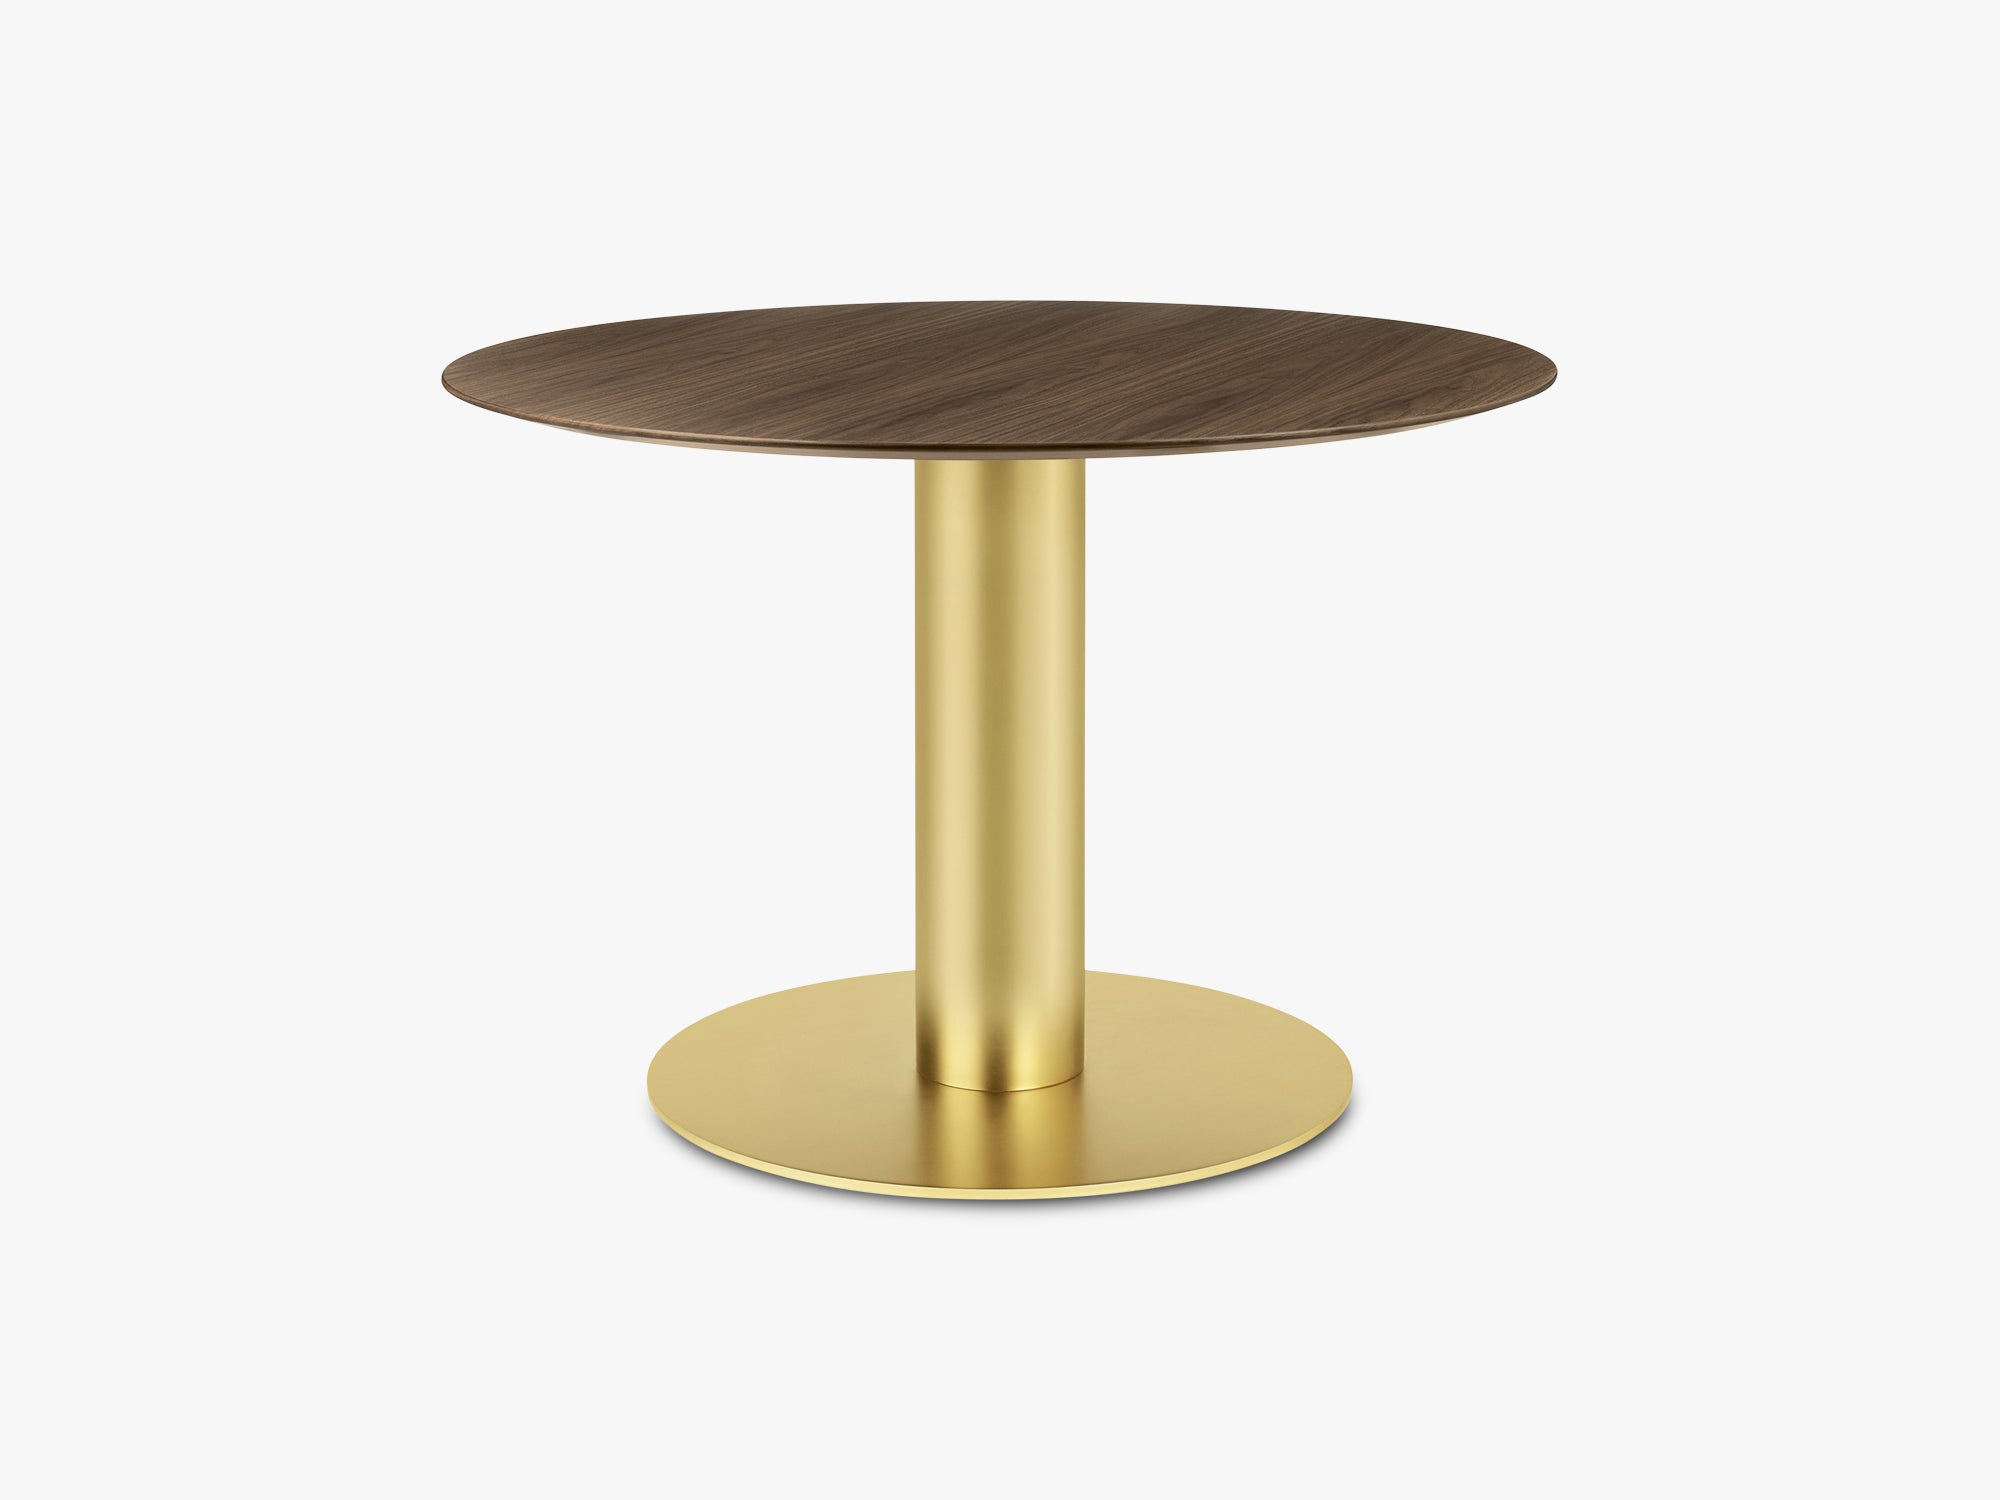 GUBI 2.0 Dining Table - Round - Ø110 - Brass base, Walnut top fra GUBI